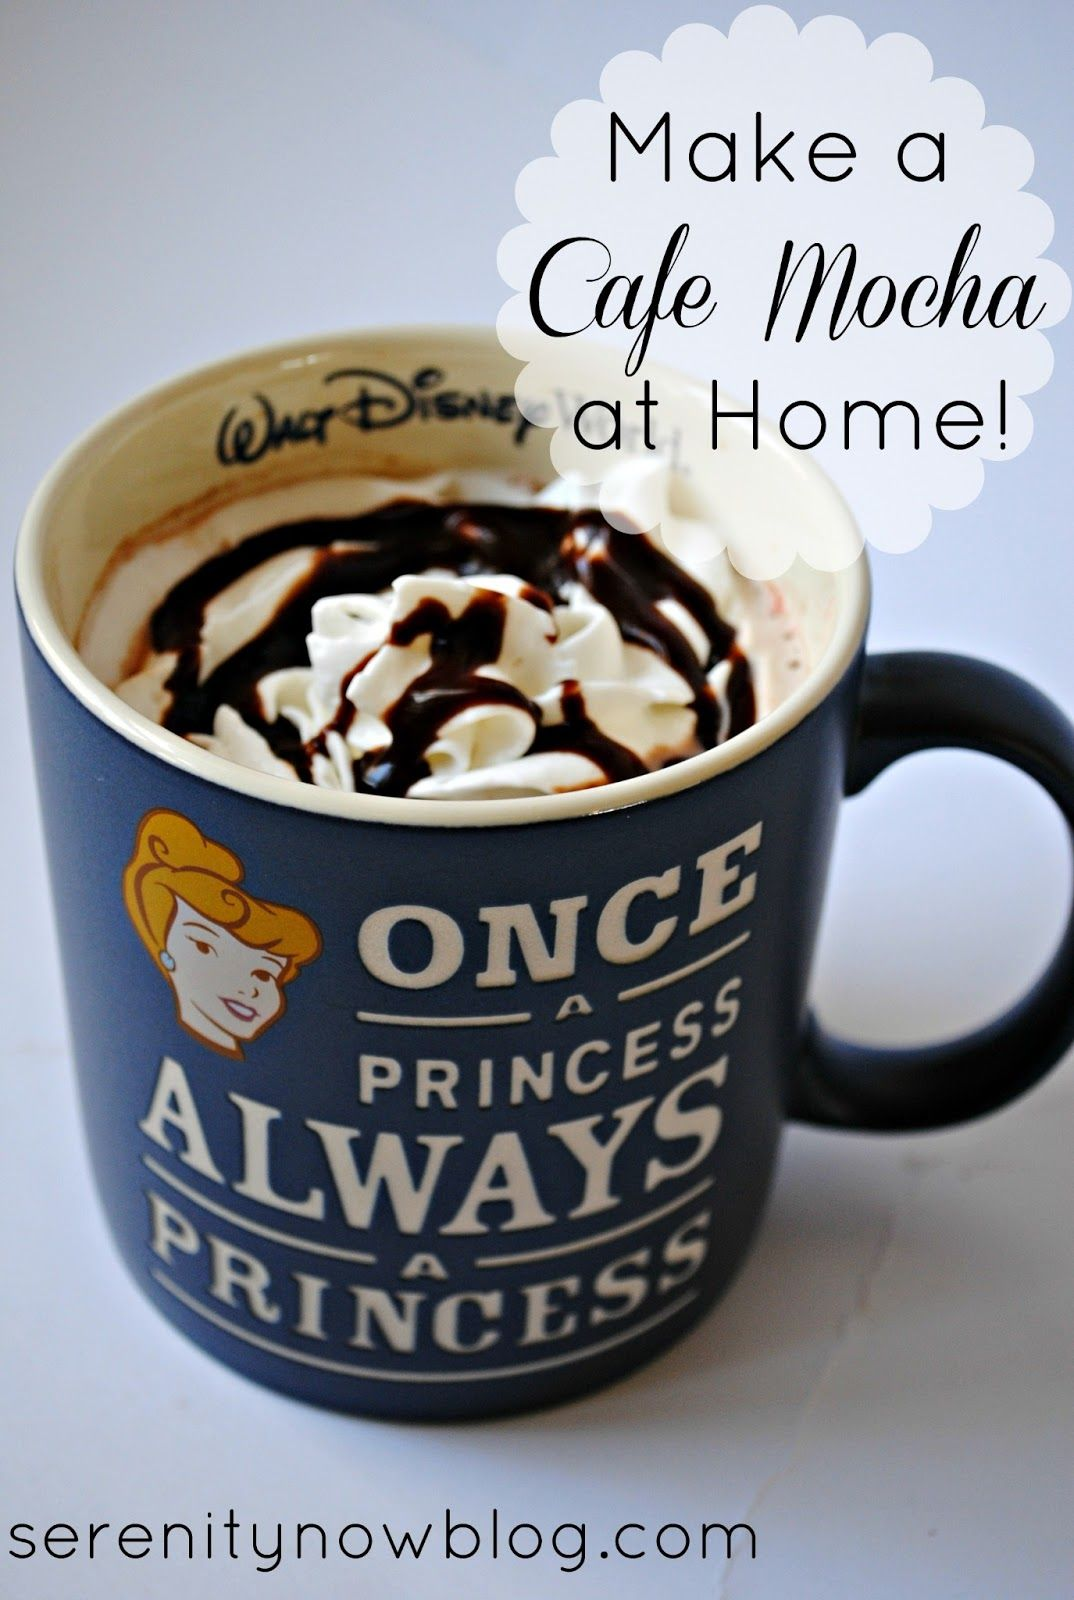 How to Make a Cafe Mocha at Home (pantry ingredients) from